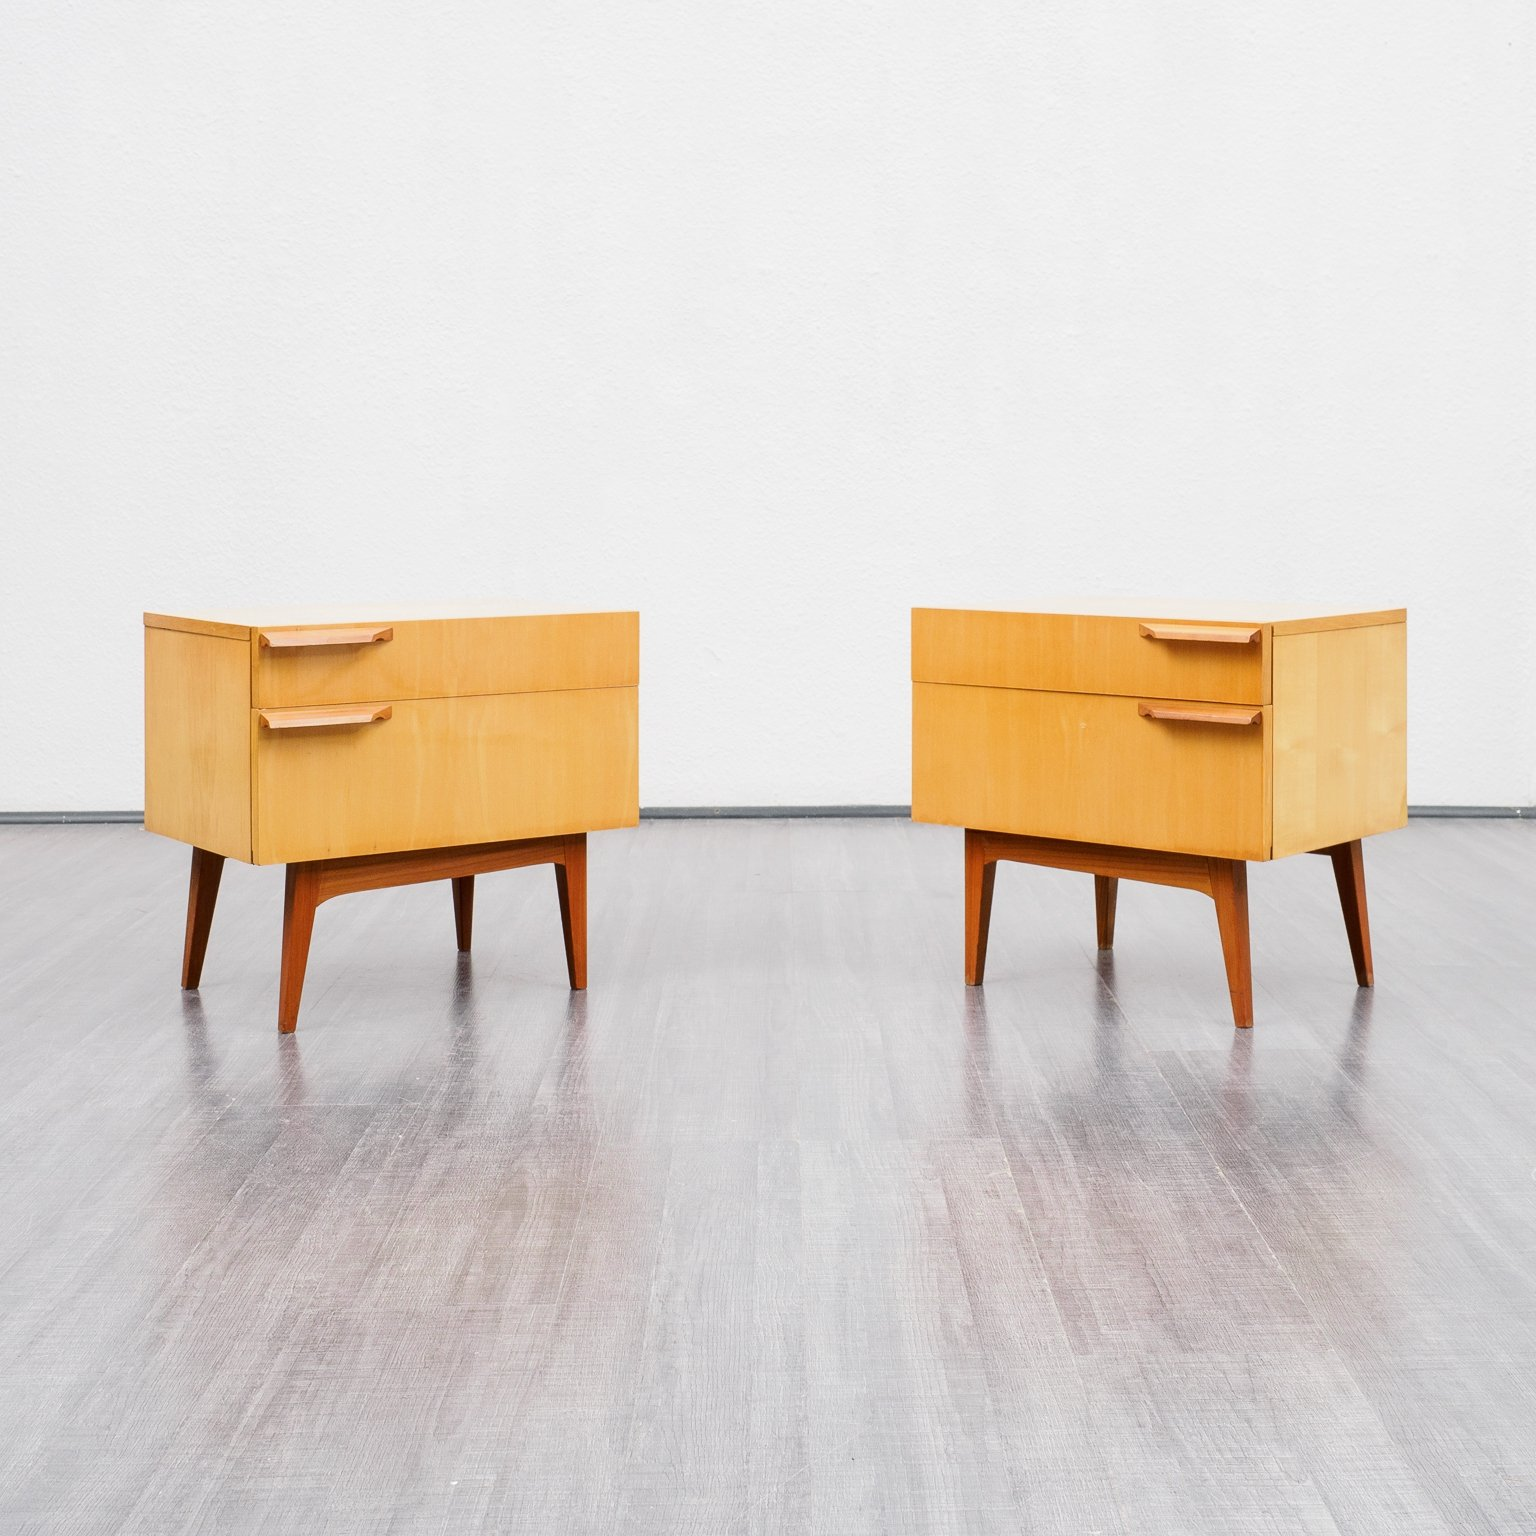 Picture of: Pair Of Mid Century Bedside Tables In Birchwood 1950s 129925